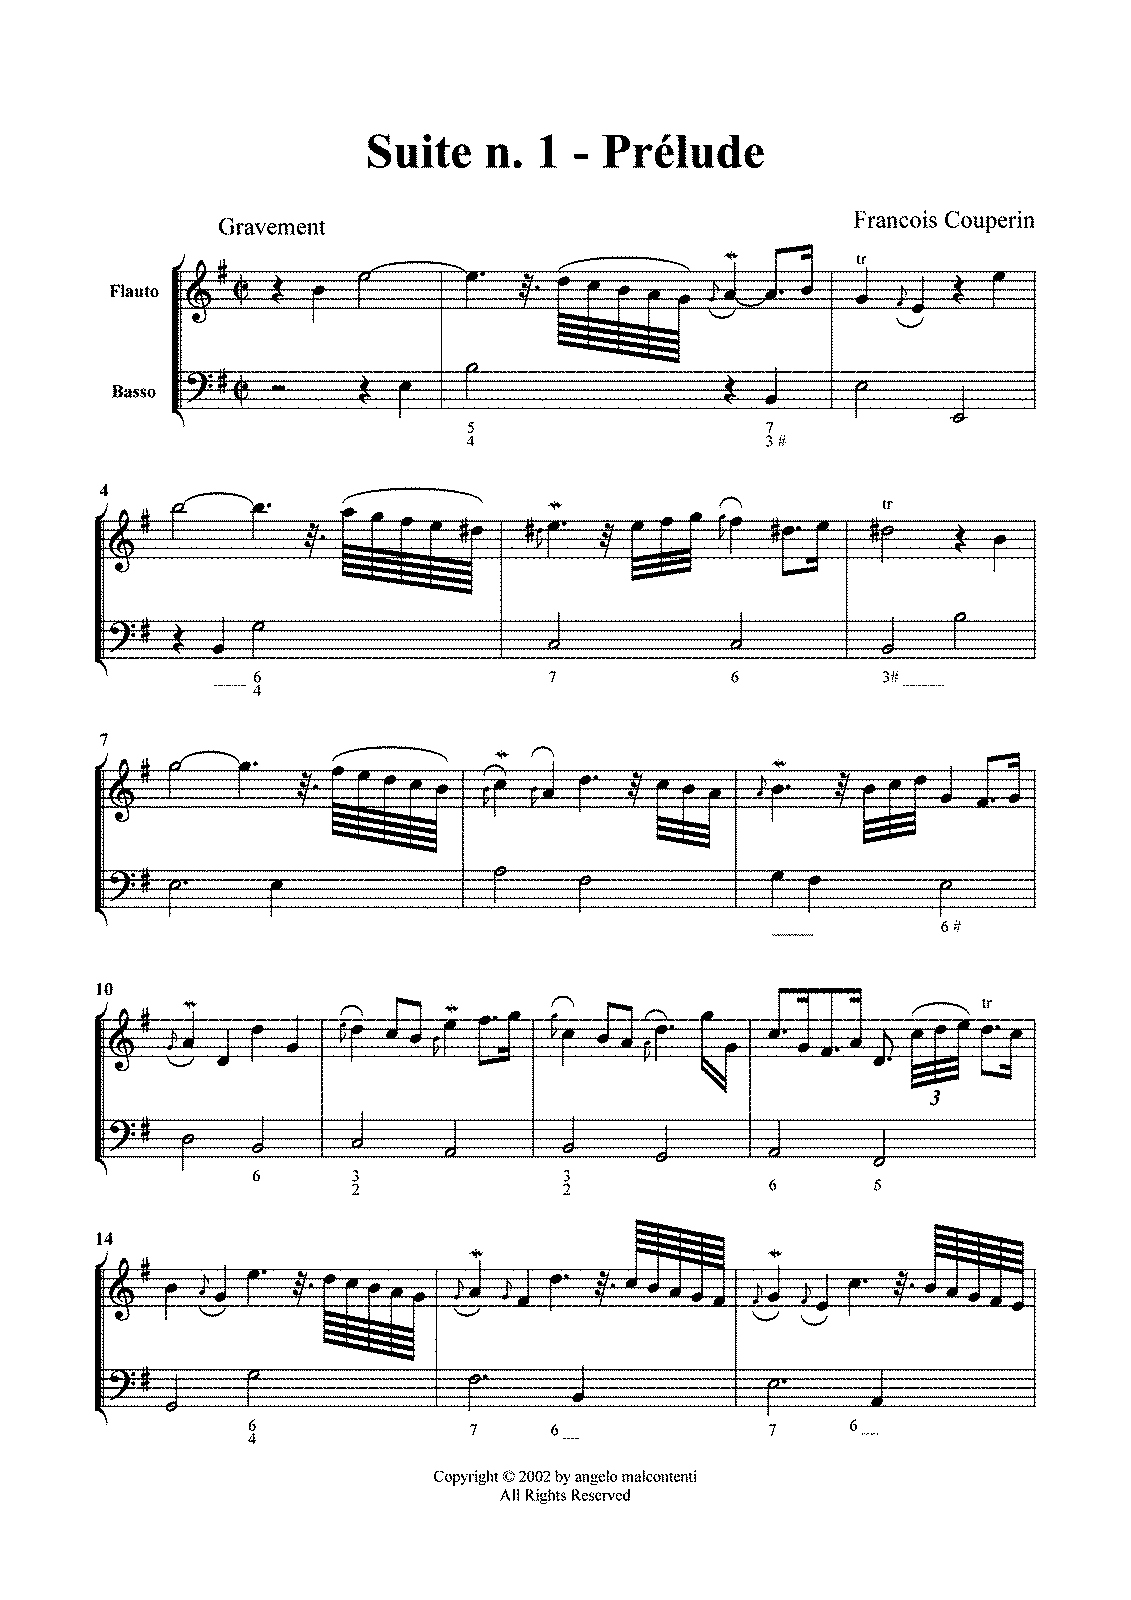 PMLP184018-Couperin Suite 1 fl and continuo.pdf